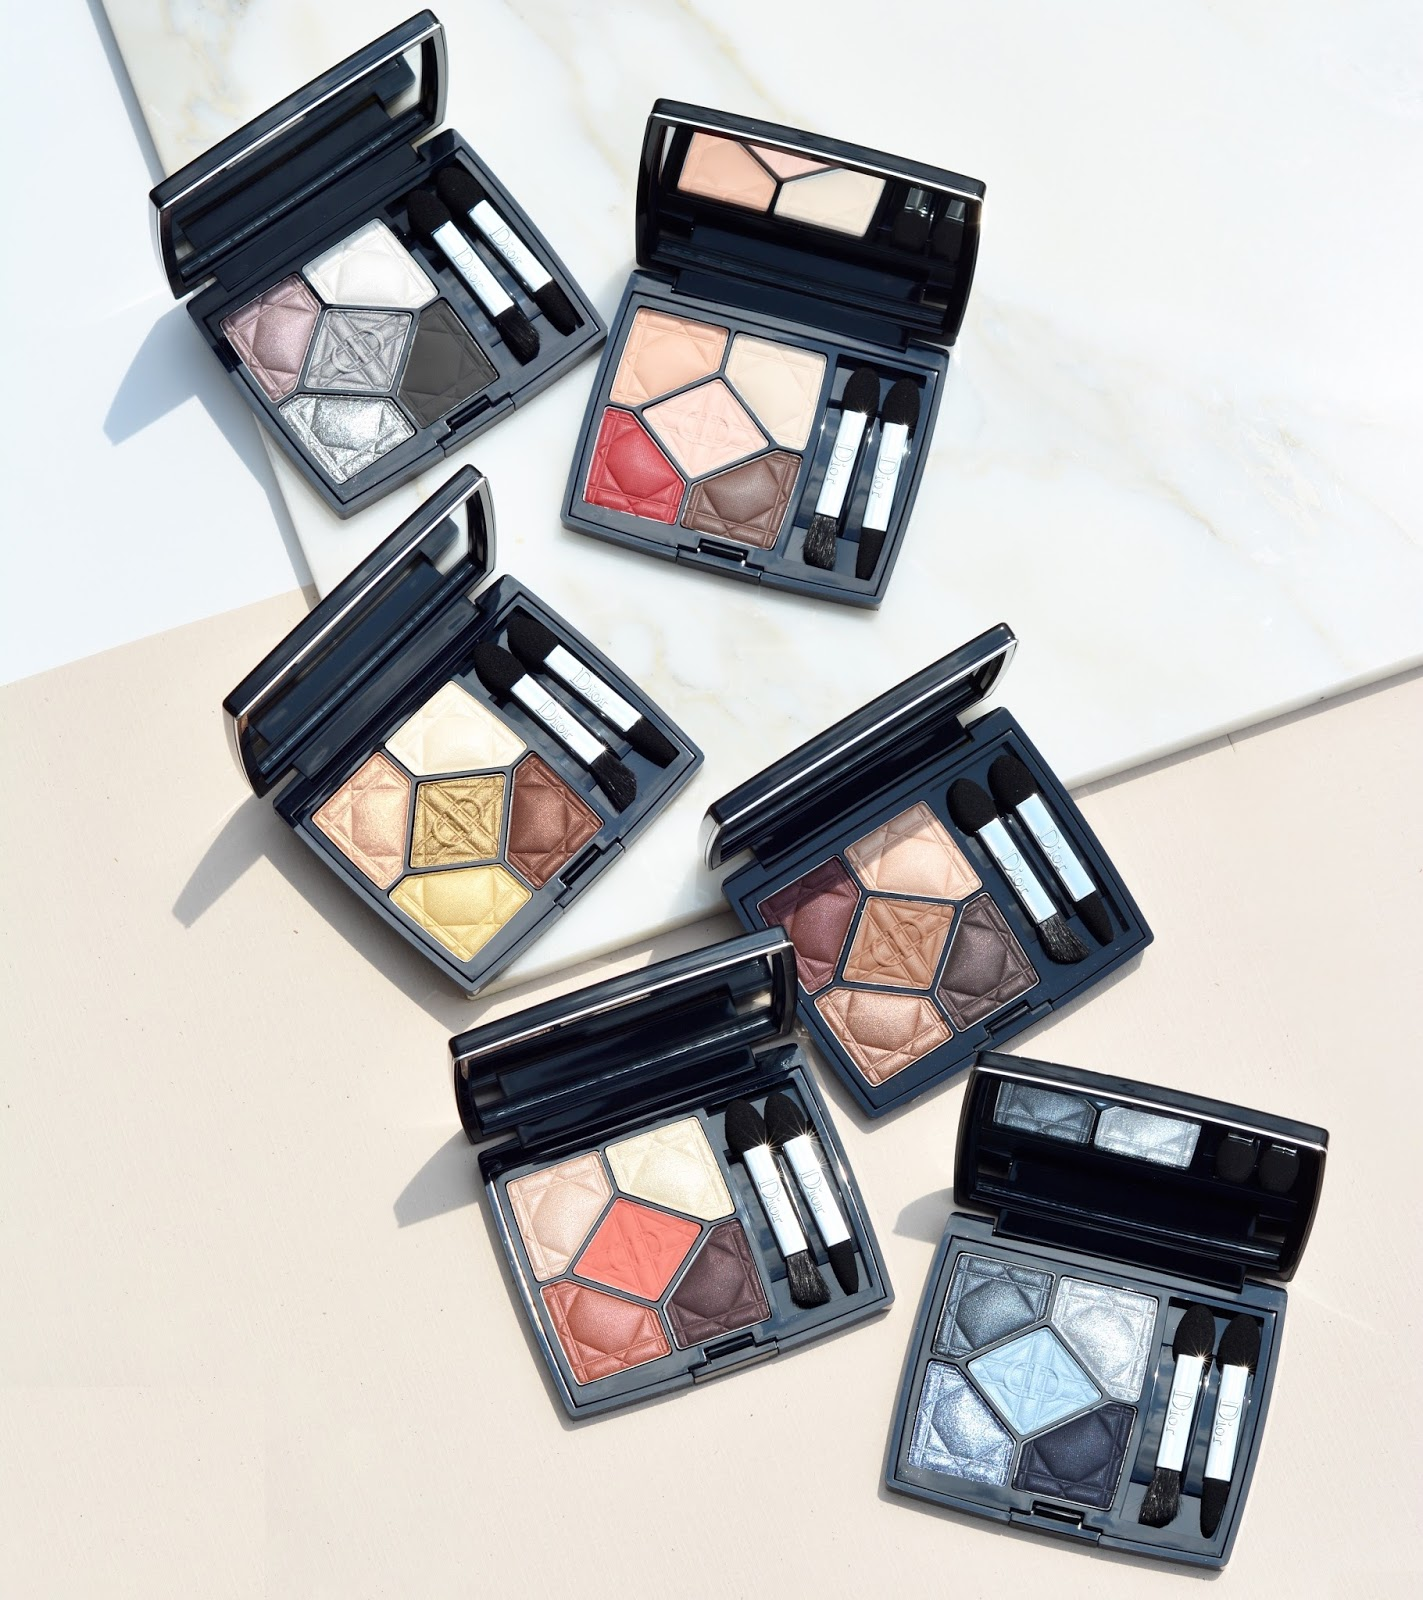 dior 5 couleurs eyeshadow palette quint swatches review expose feel exalt inflame provoke defy